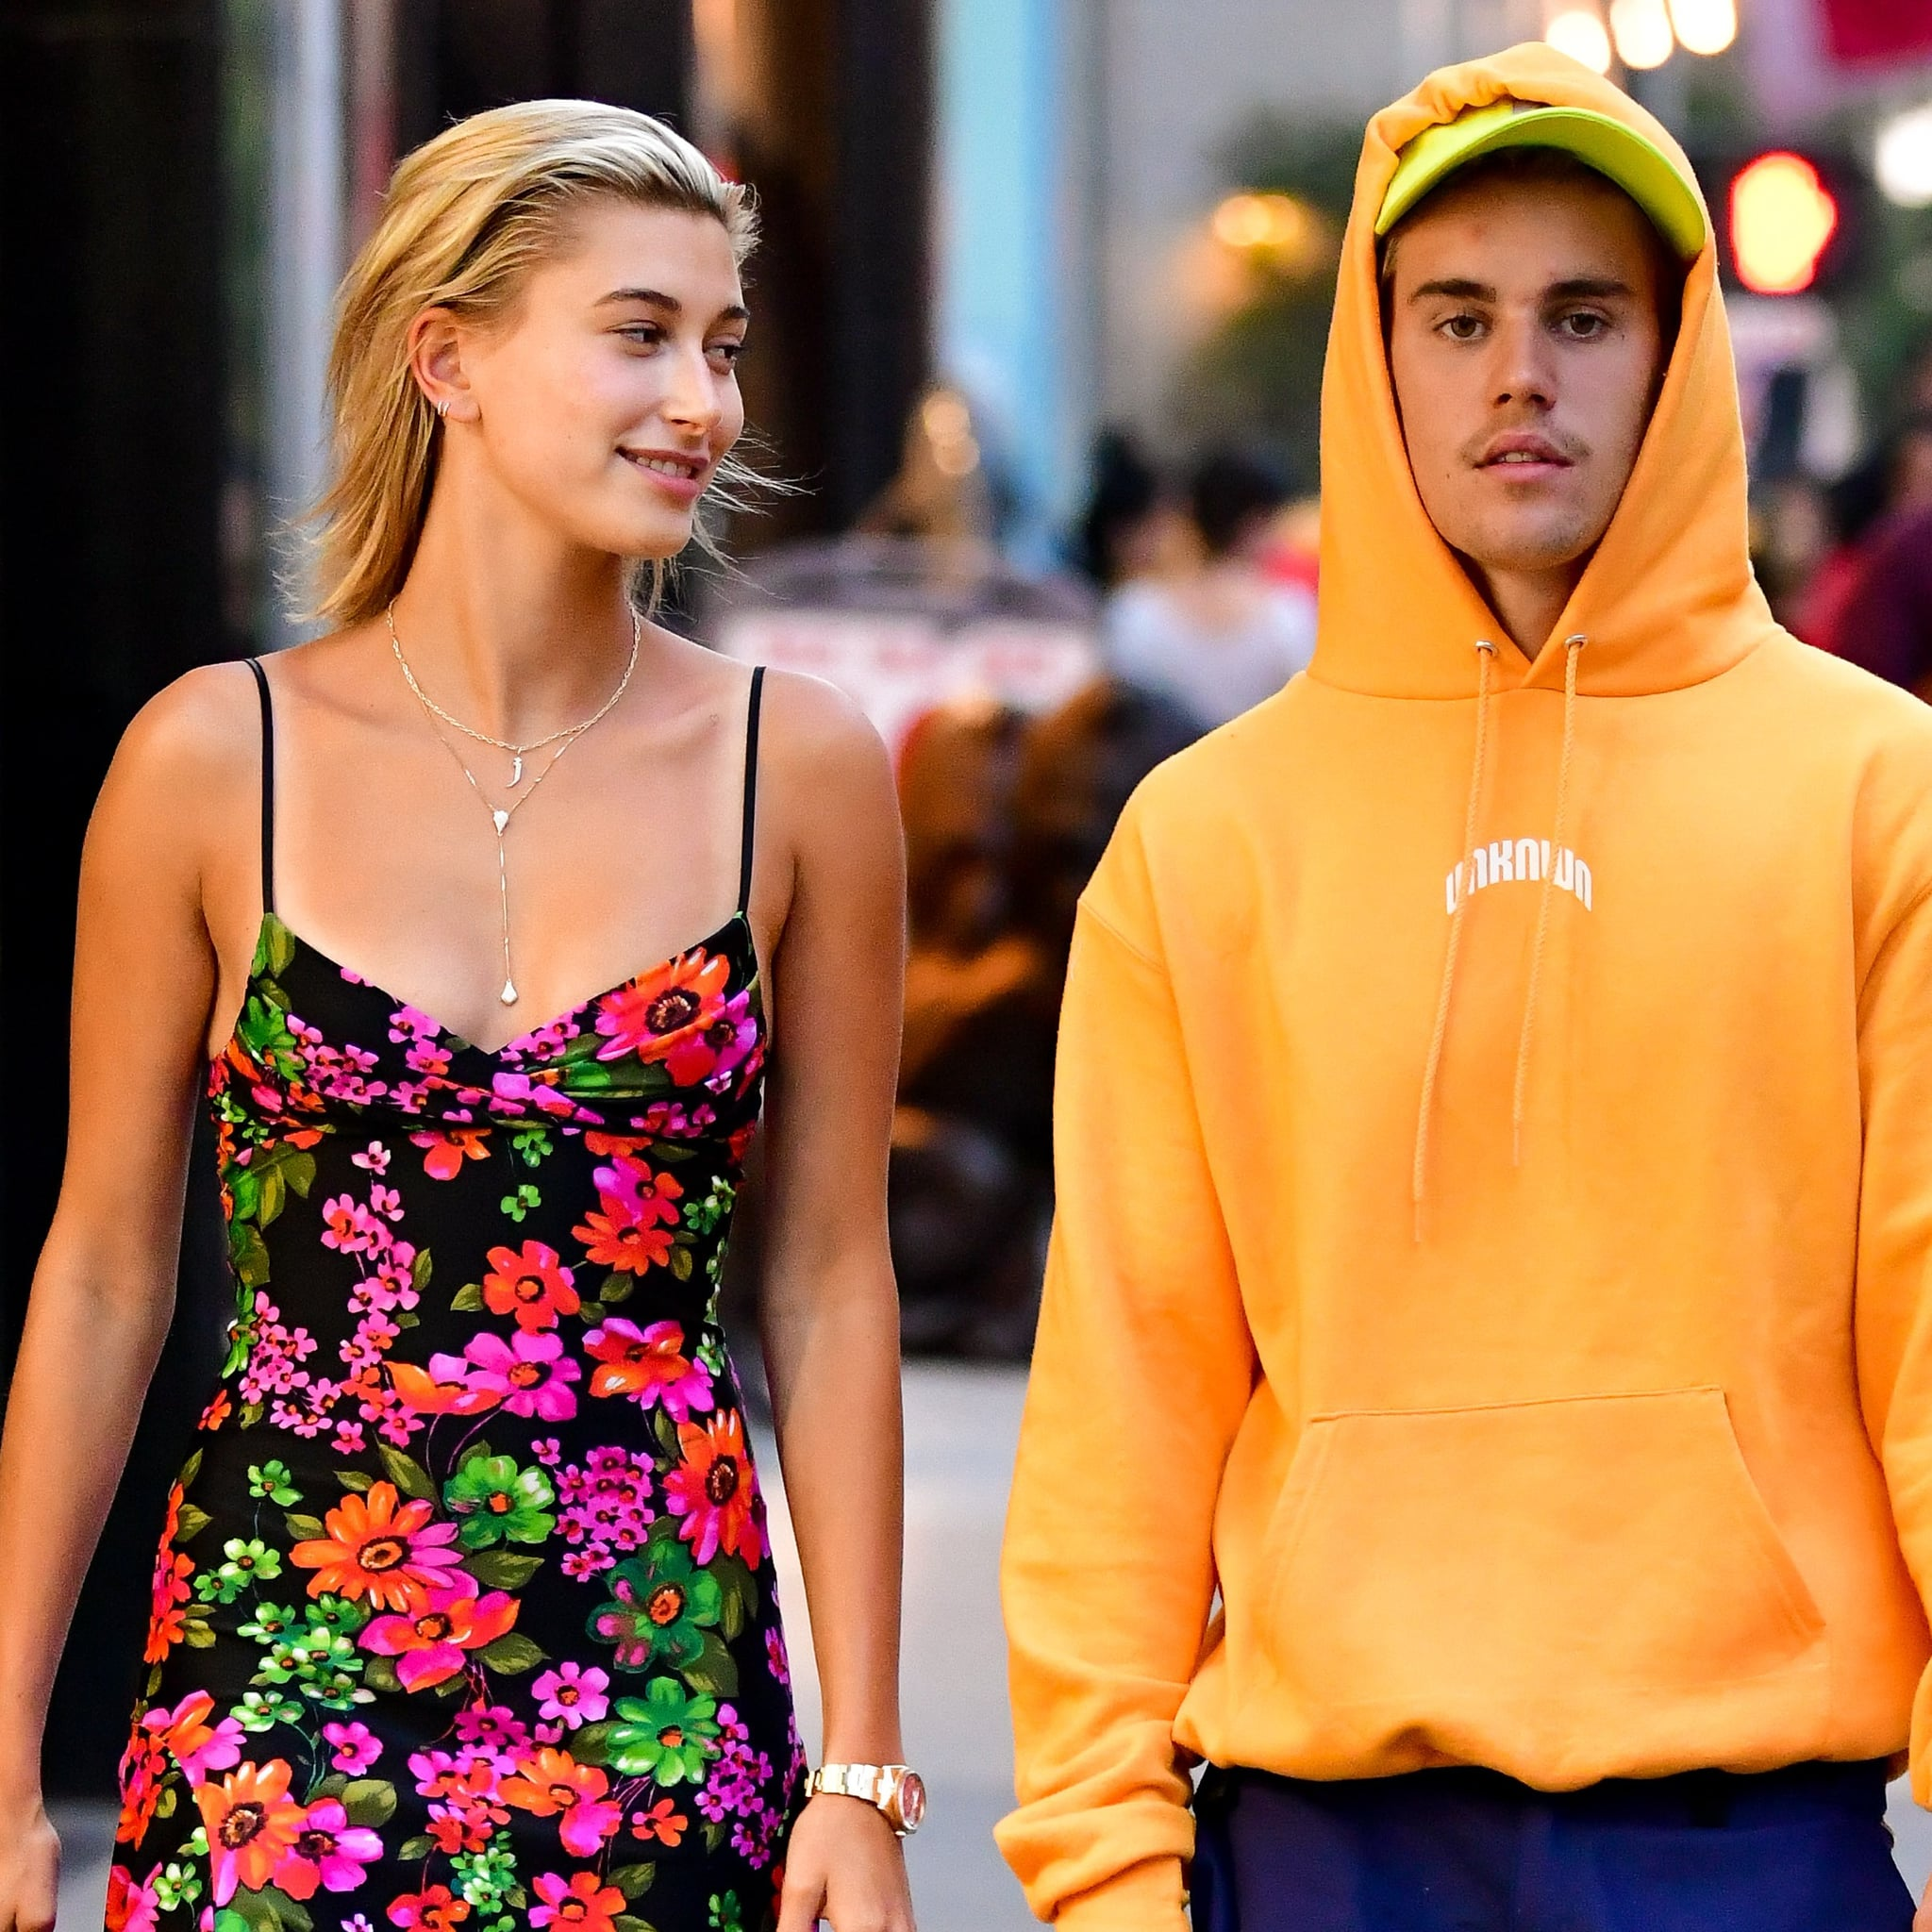 Justin Bieber Steps Up and Defends His Marriage - Check Out How He Defends Hailey Baldwin